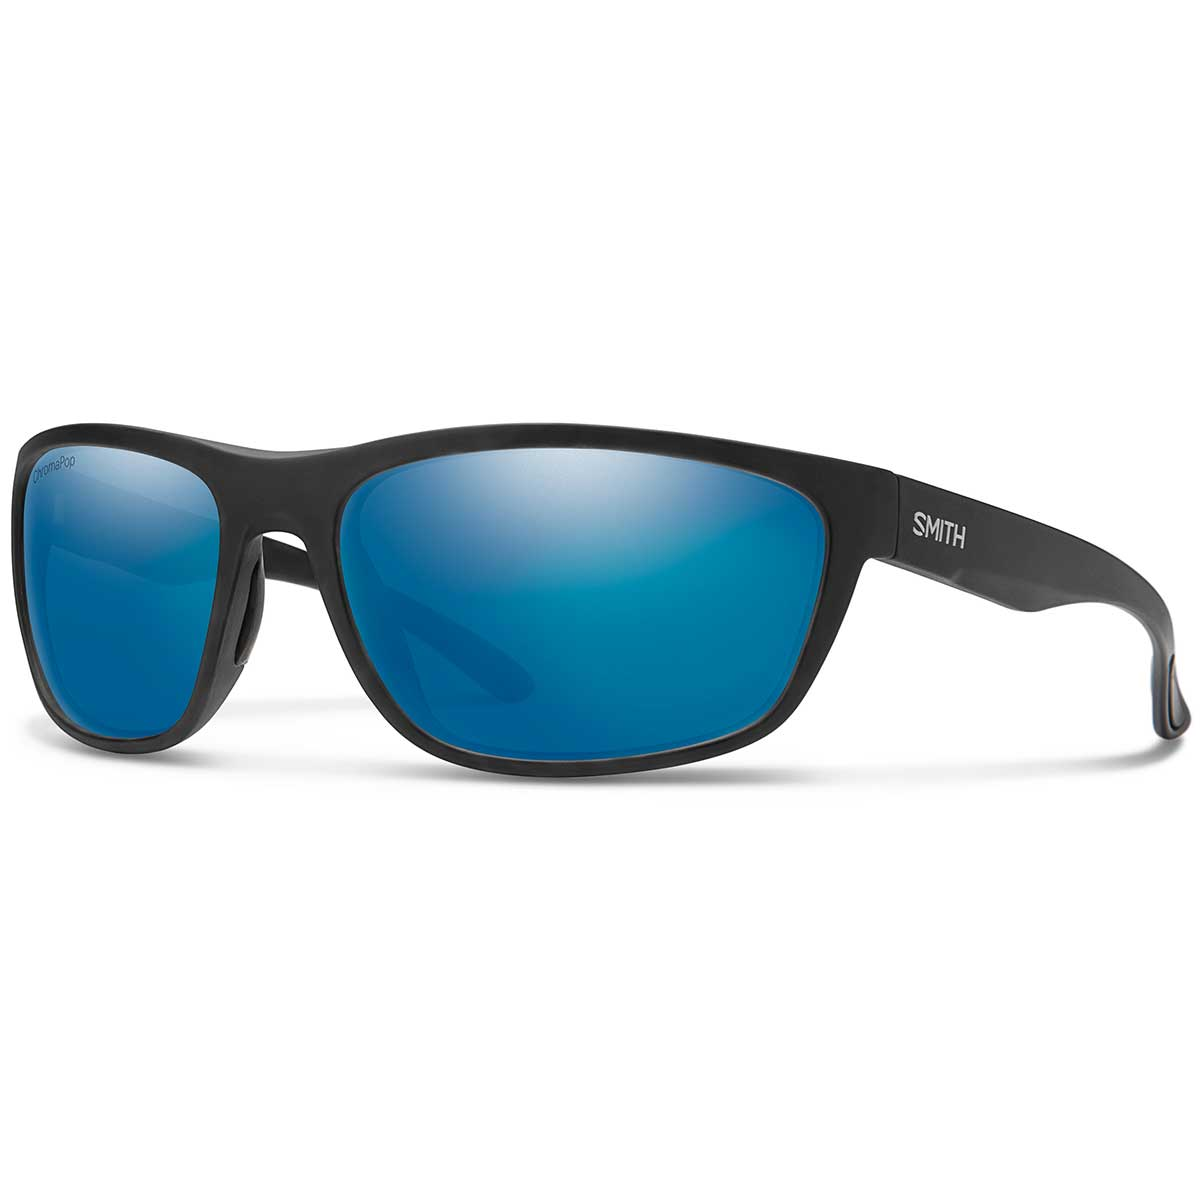 Smith Redding Sunglasses Polarized Chromapop in Matte Black with Blue Mirror Glass main view